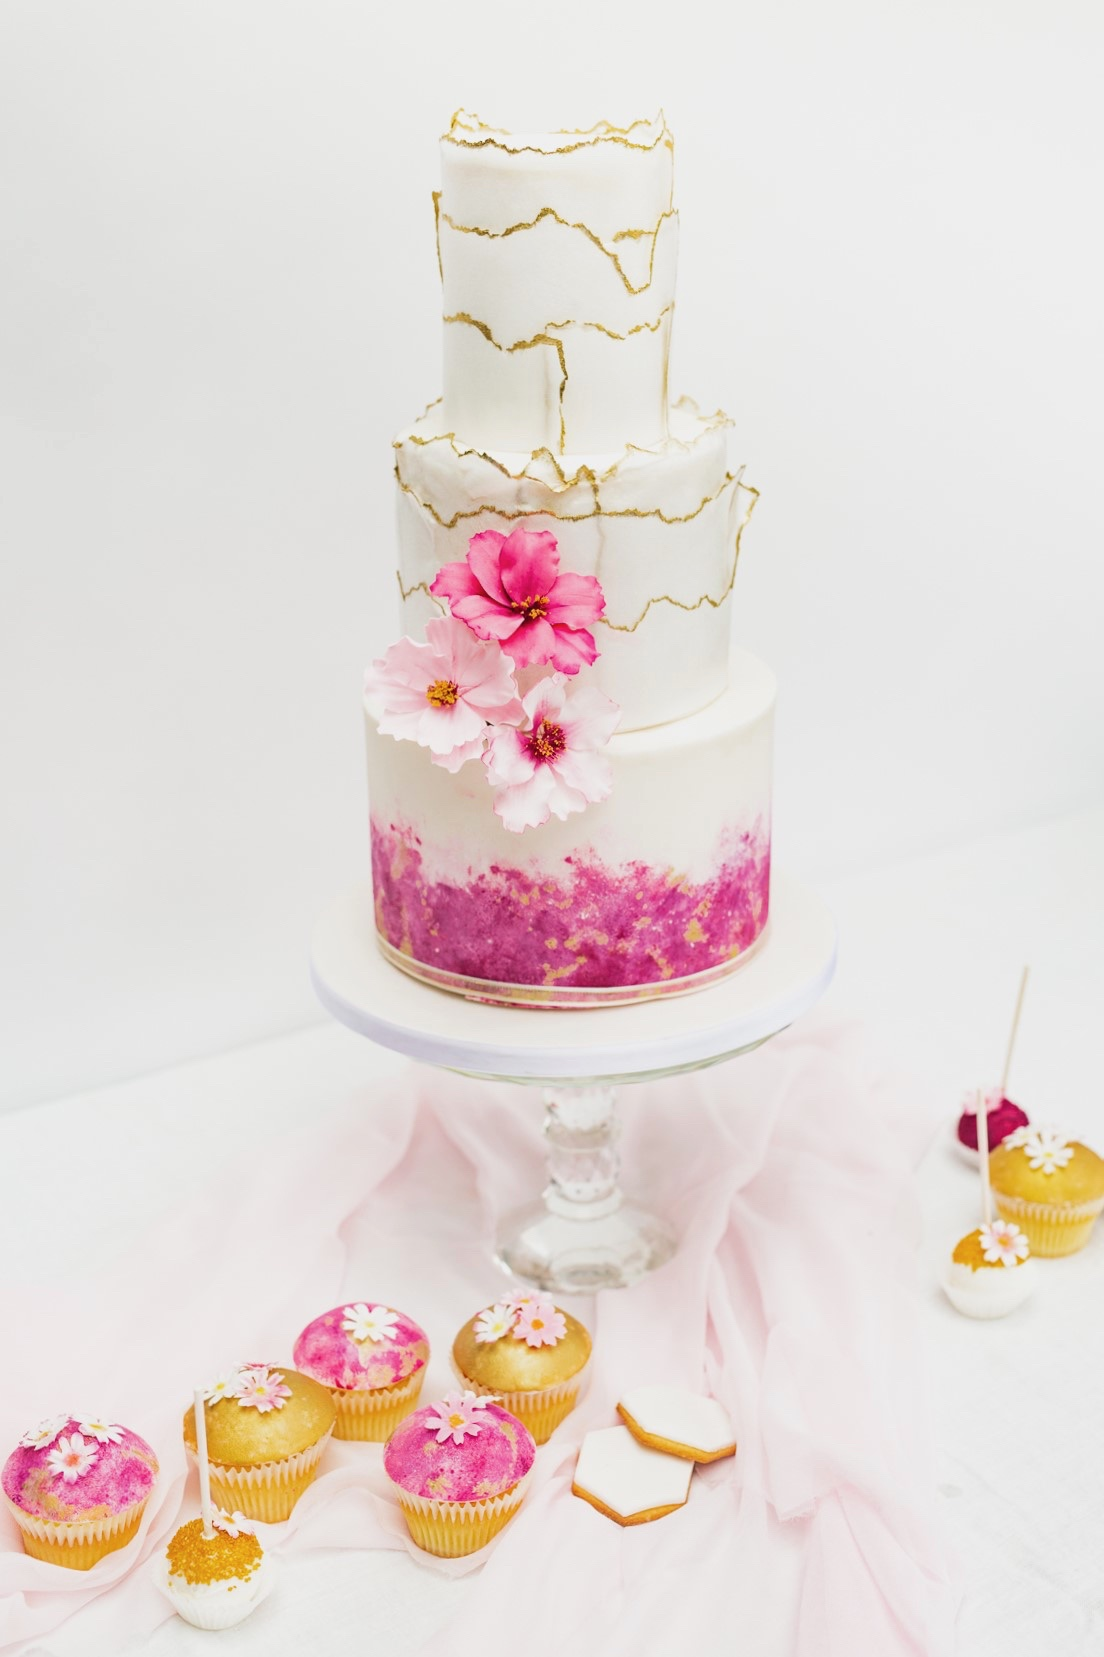 bespoke luxury wedding cake